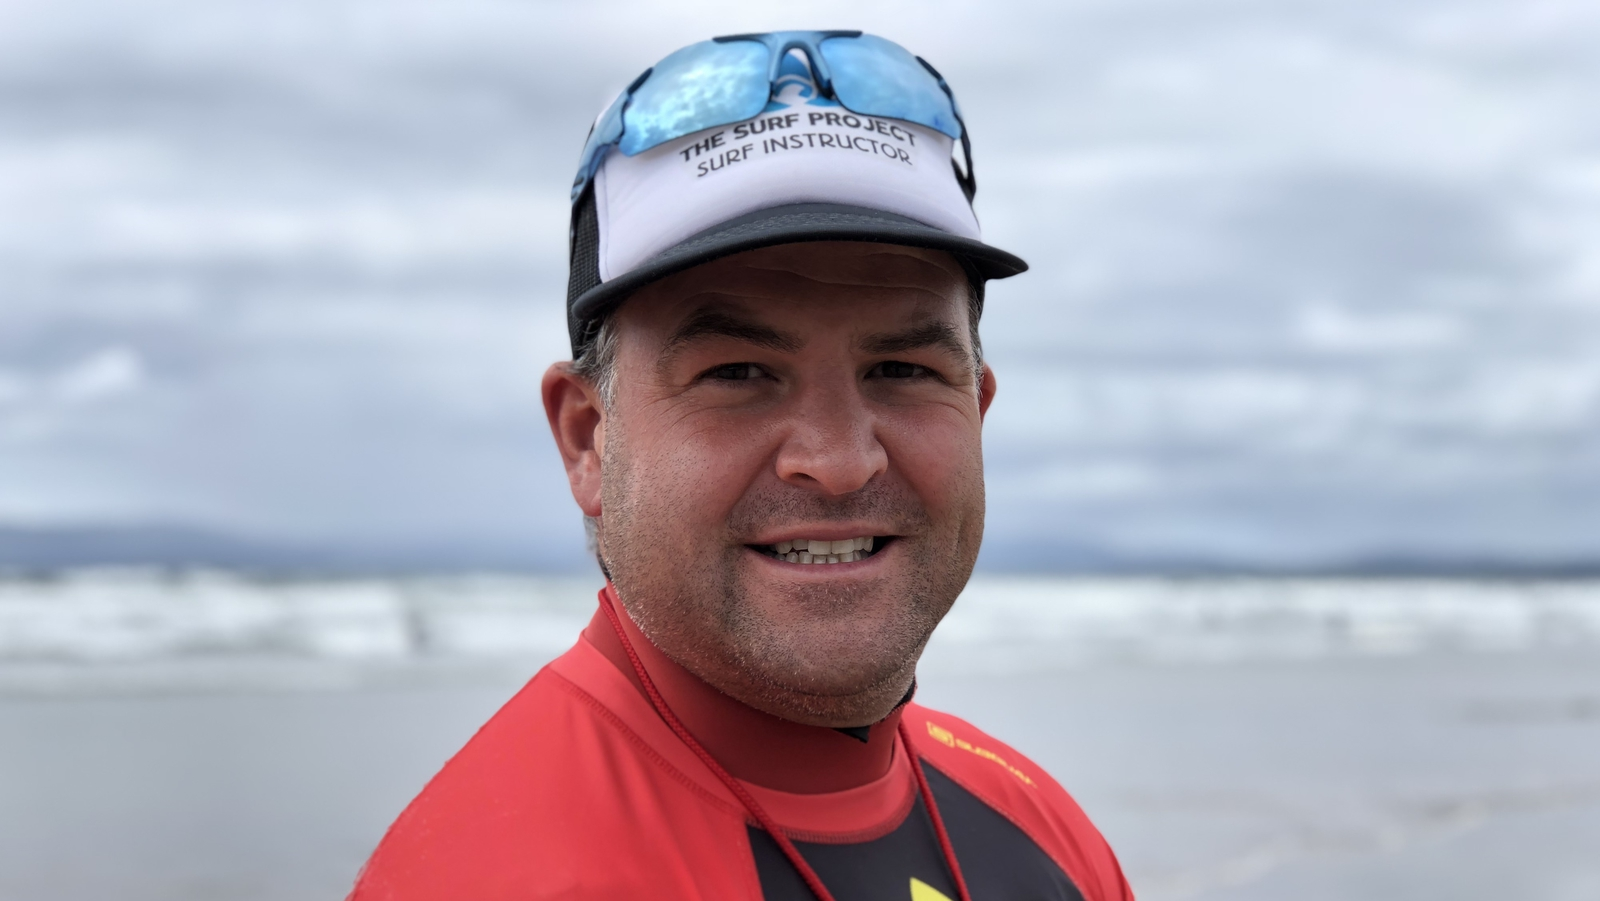 Image - Jono Griffin from The Surf Project, a pioneer ministry supported by the Methodist Church in Ireland